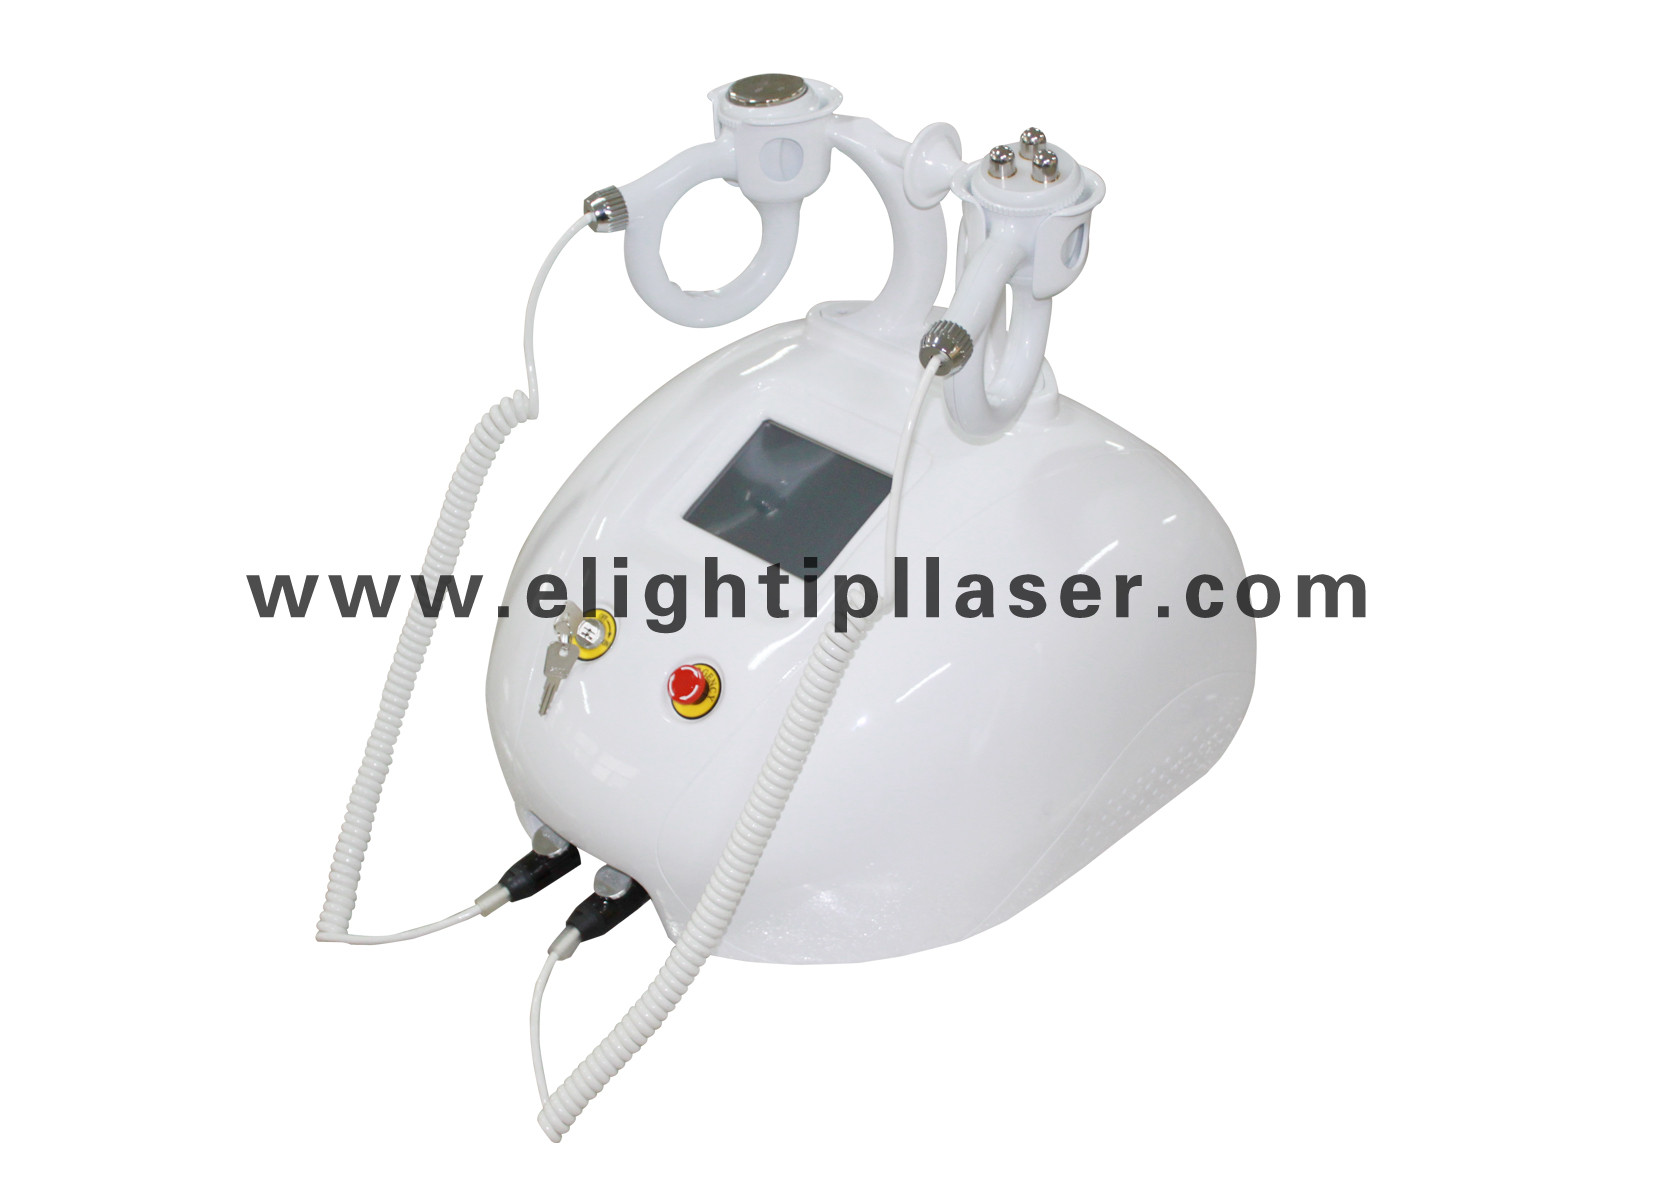 Fast Professional Cavitation Ultrasonic Liposuction RF Slimming Machine For Body Shaping